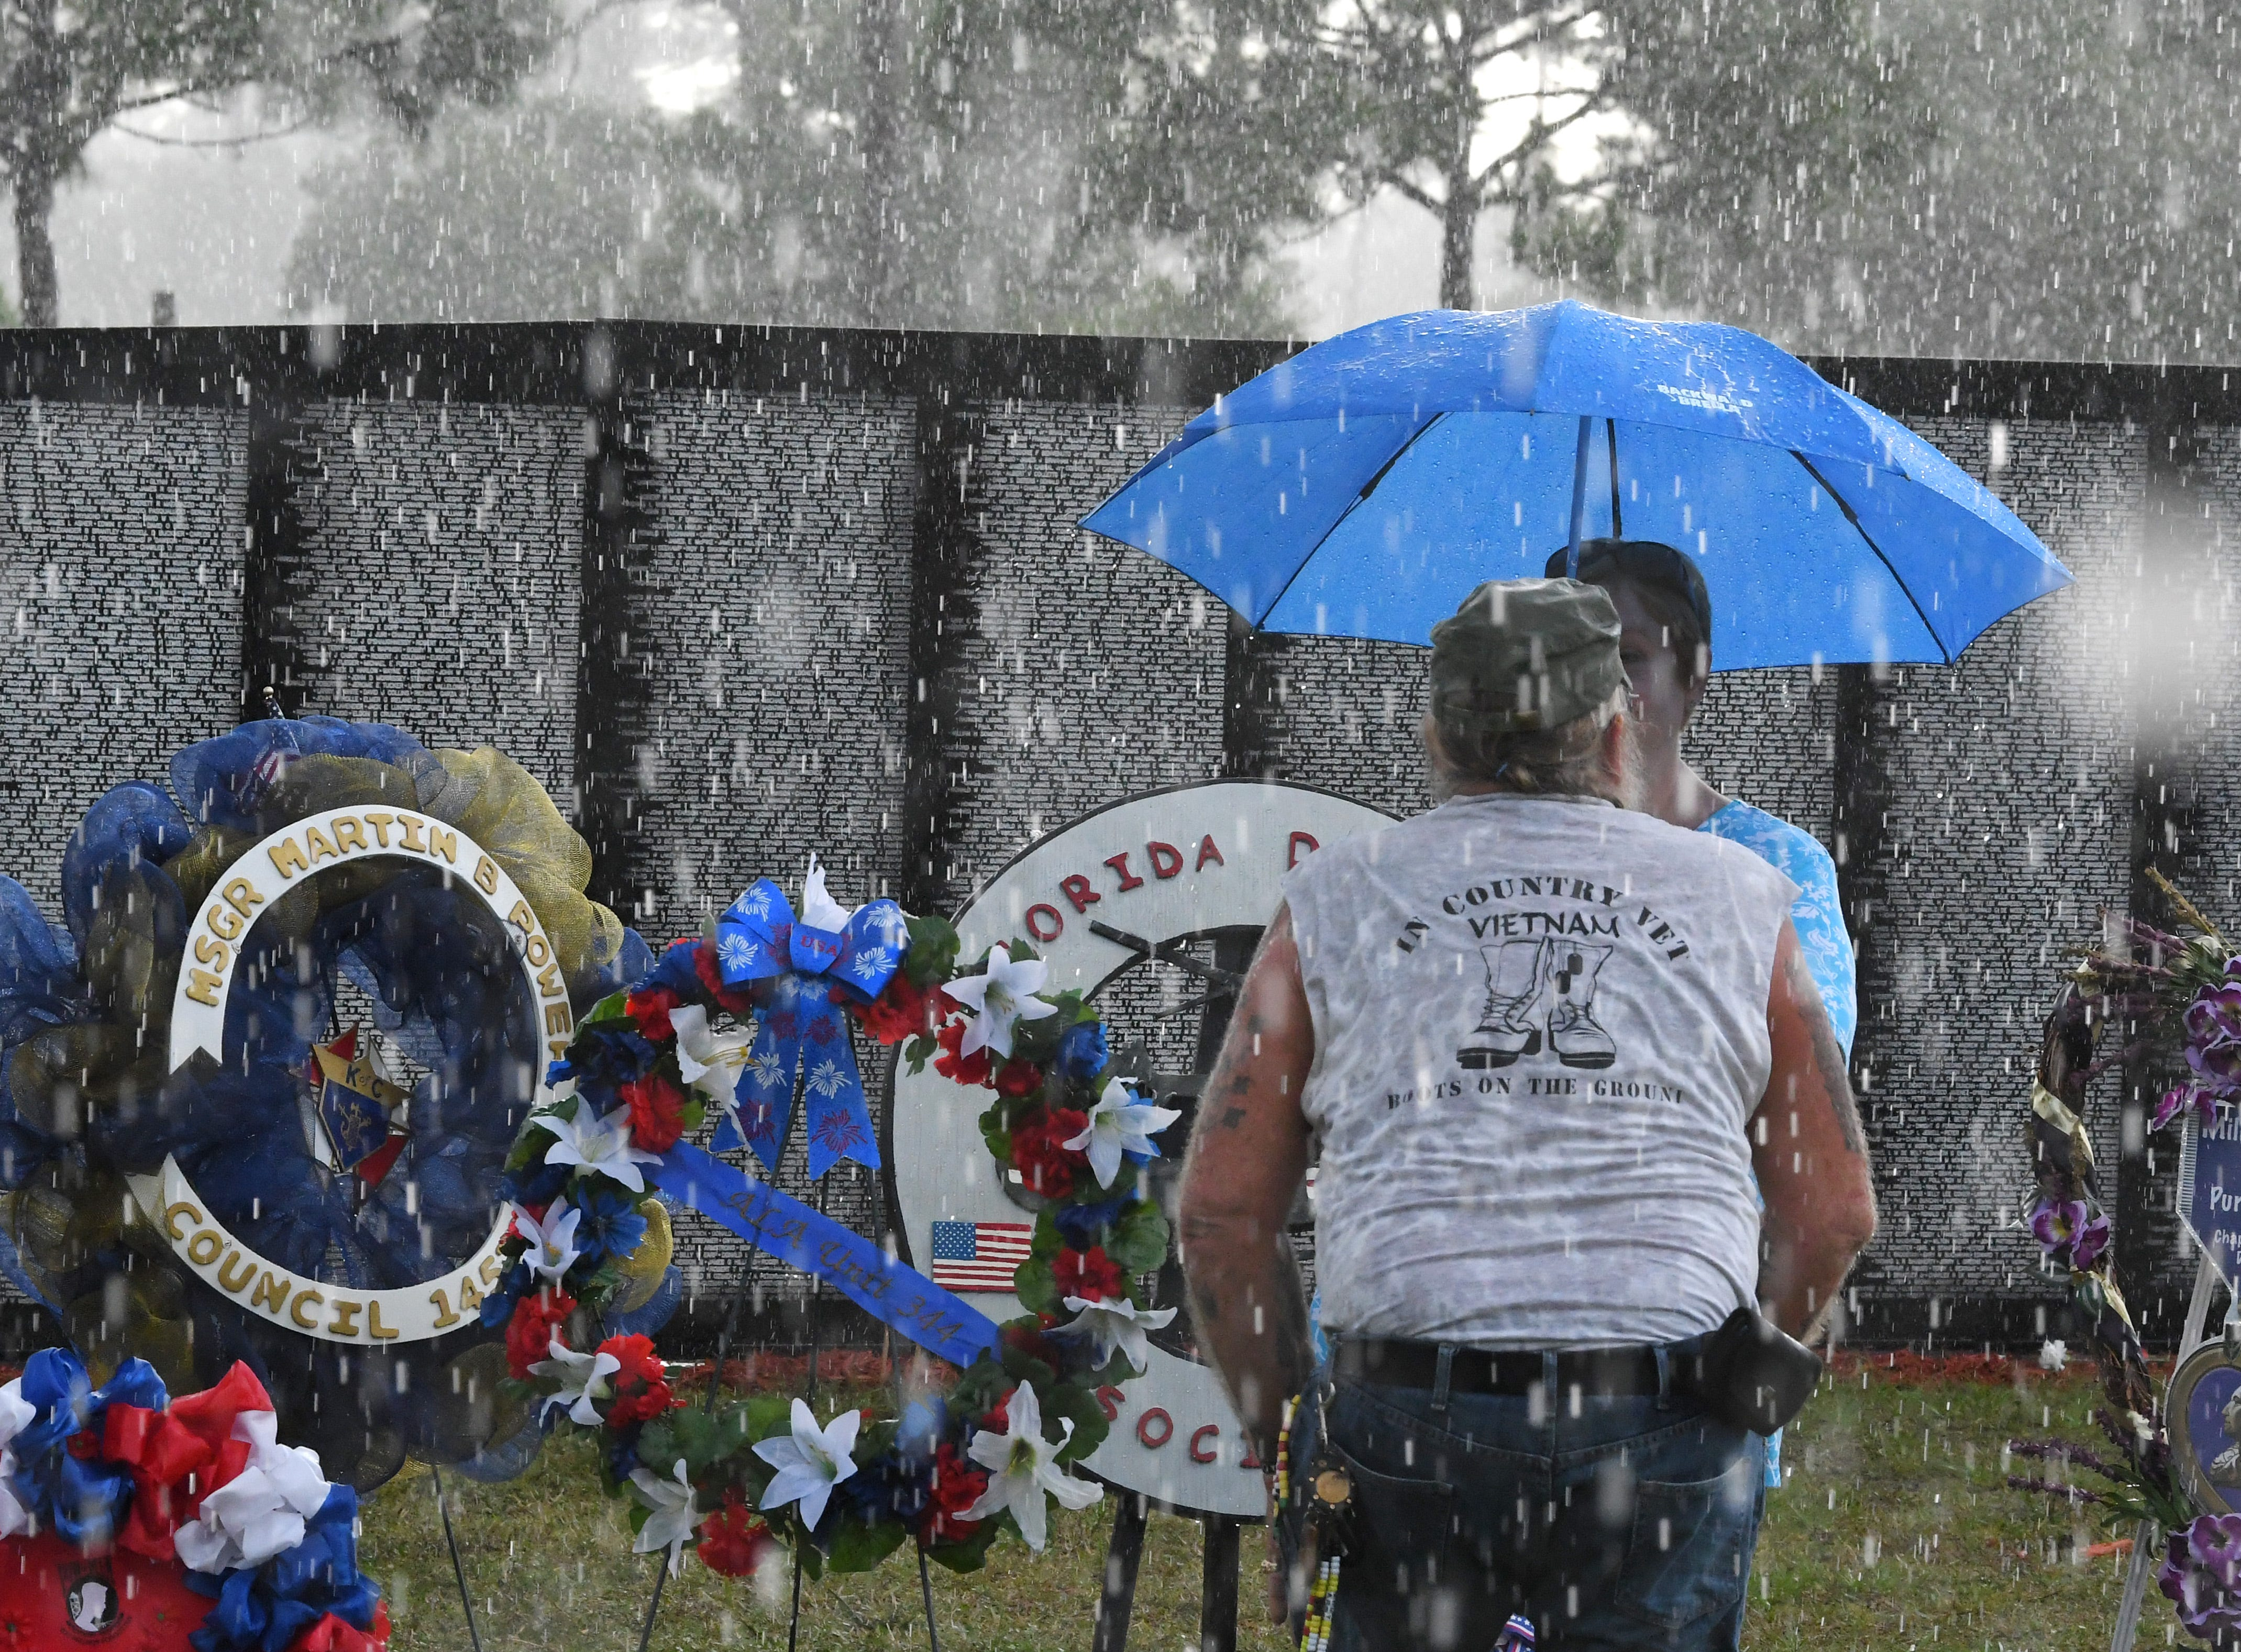 For several minutes, heavy rain hit the area. Monday's presentation of wreaths and opening ceremony at the Vietnam Traveling Memorial Wall, which will be set up until May 12. It is part of The 32nd Annual Vietnam and All Veterans Reunion, a free event open to the public at Wickham Park in Melbourne May 9-12.